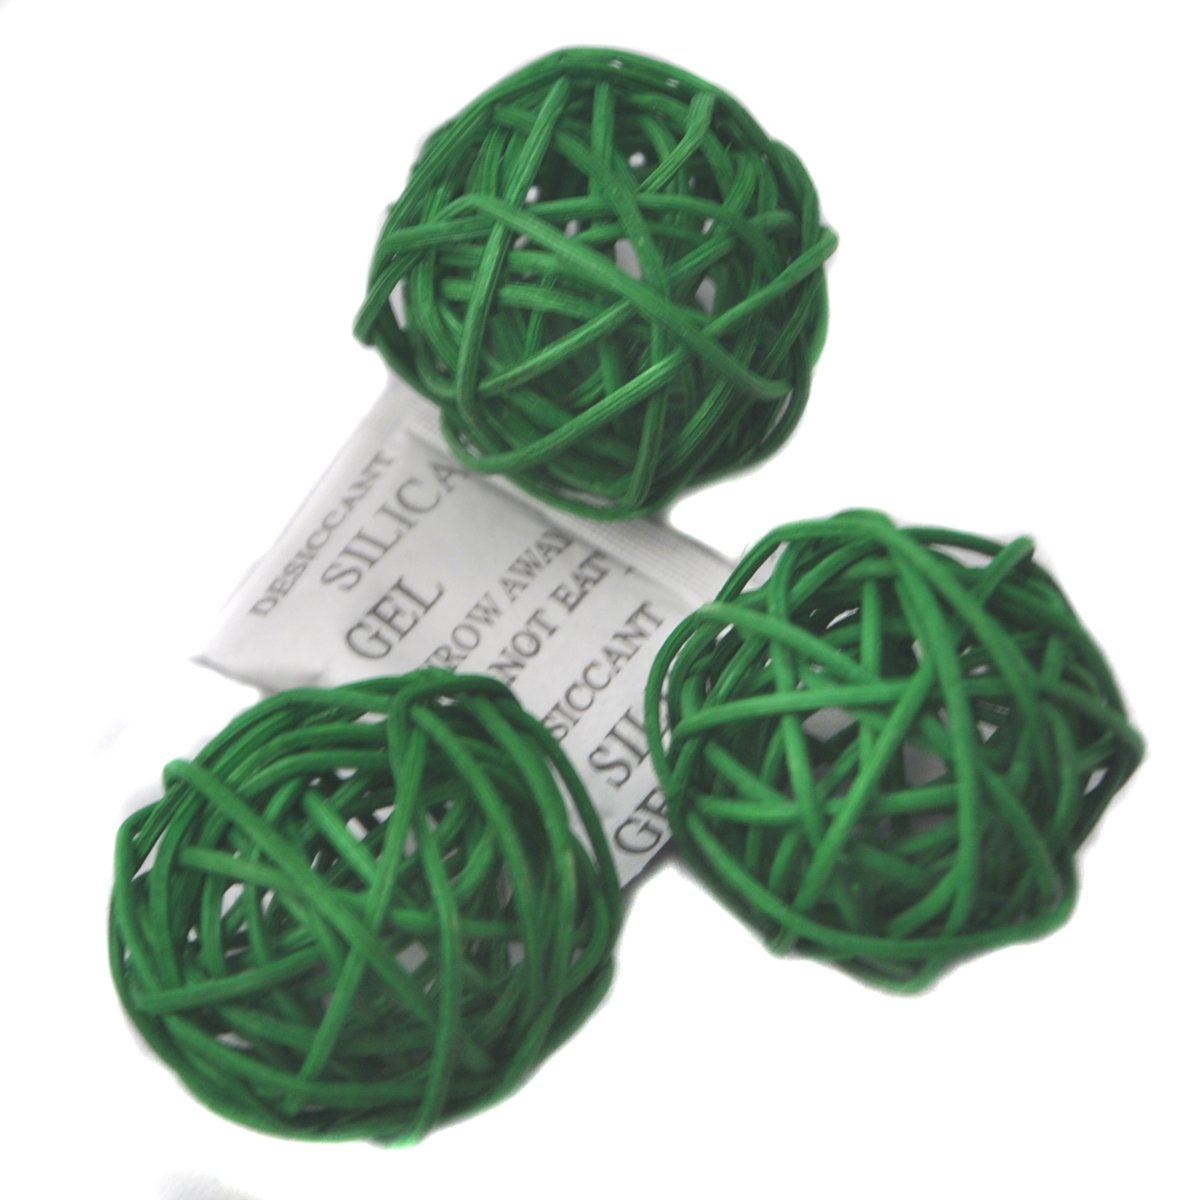 Ougual Set of 6 Wicker Rattan Balls Table Wedding Party Christmas Decoration (Diameter 8cm, Grass Green)